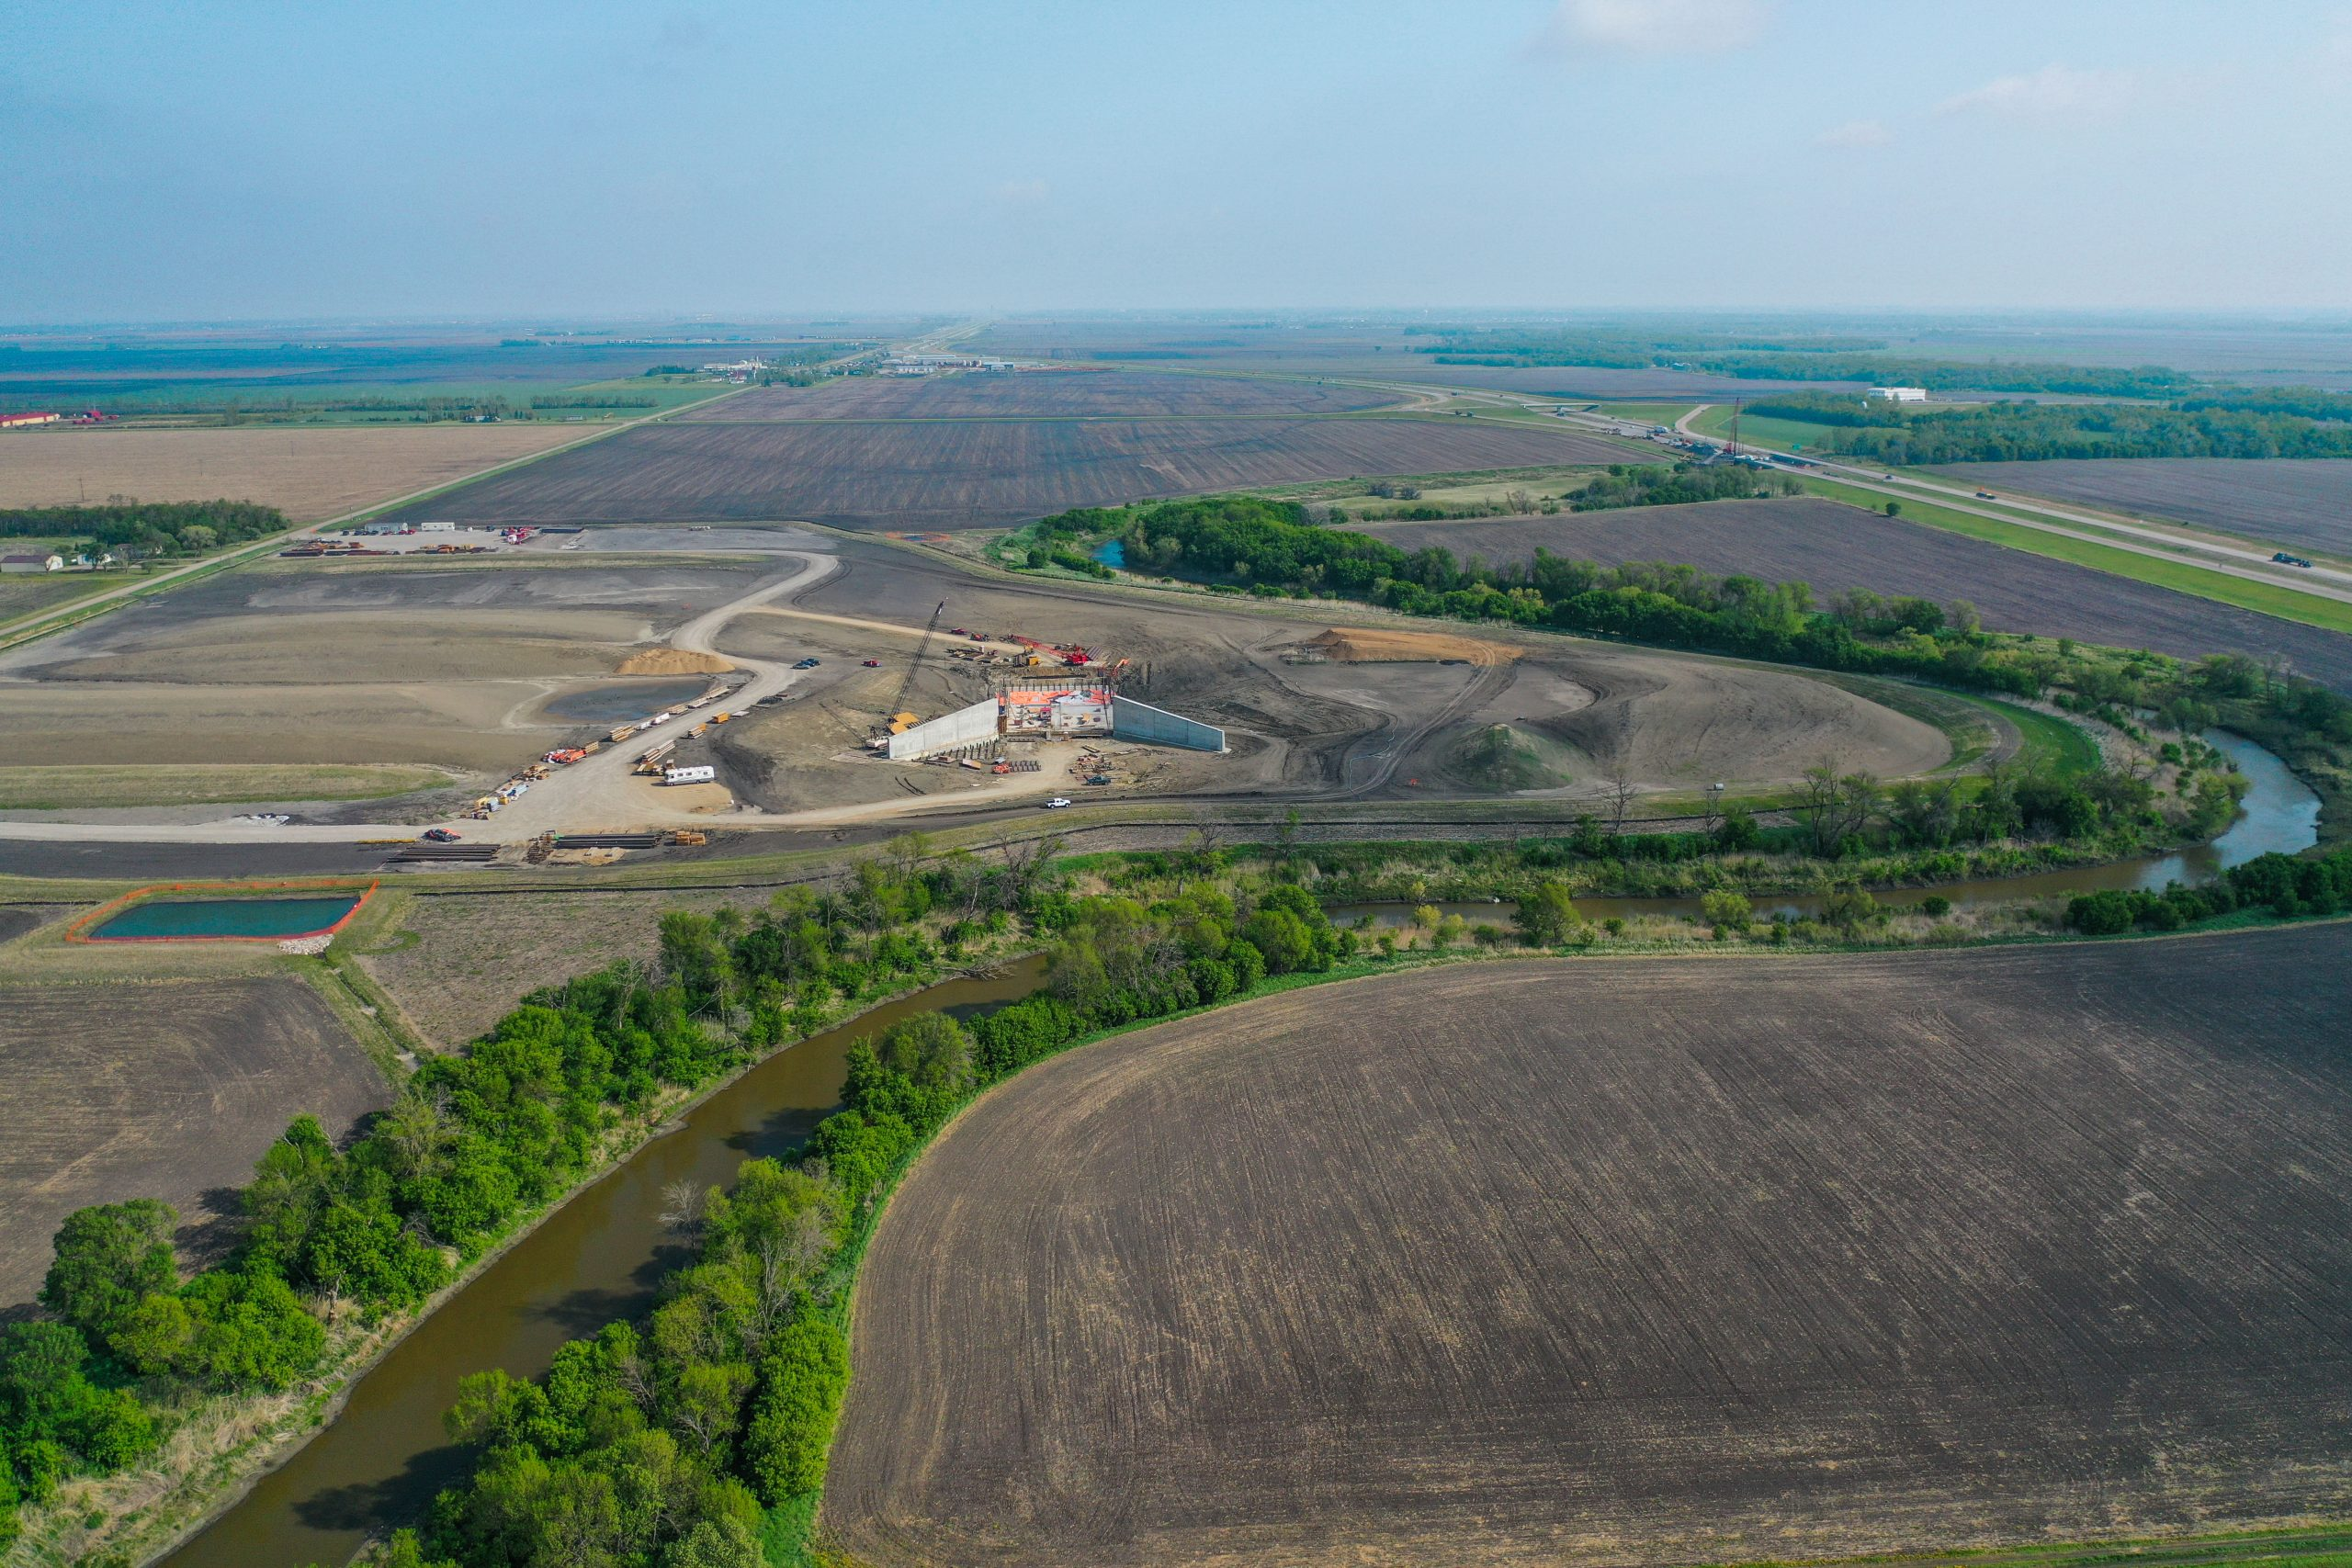 Red River Valley Alliance Announces Commercial Close of Fargo-Moorhead Metropolitan Area Flood Risk Management Project